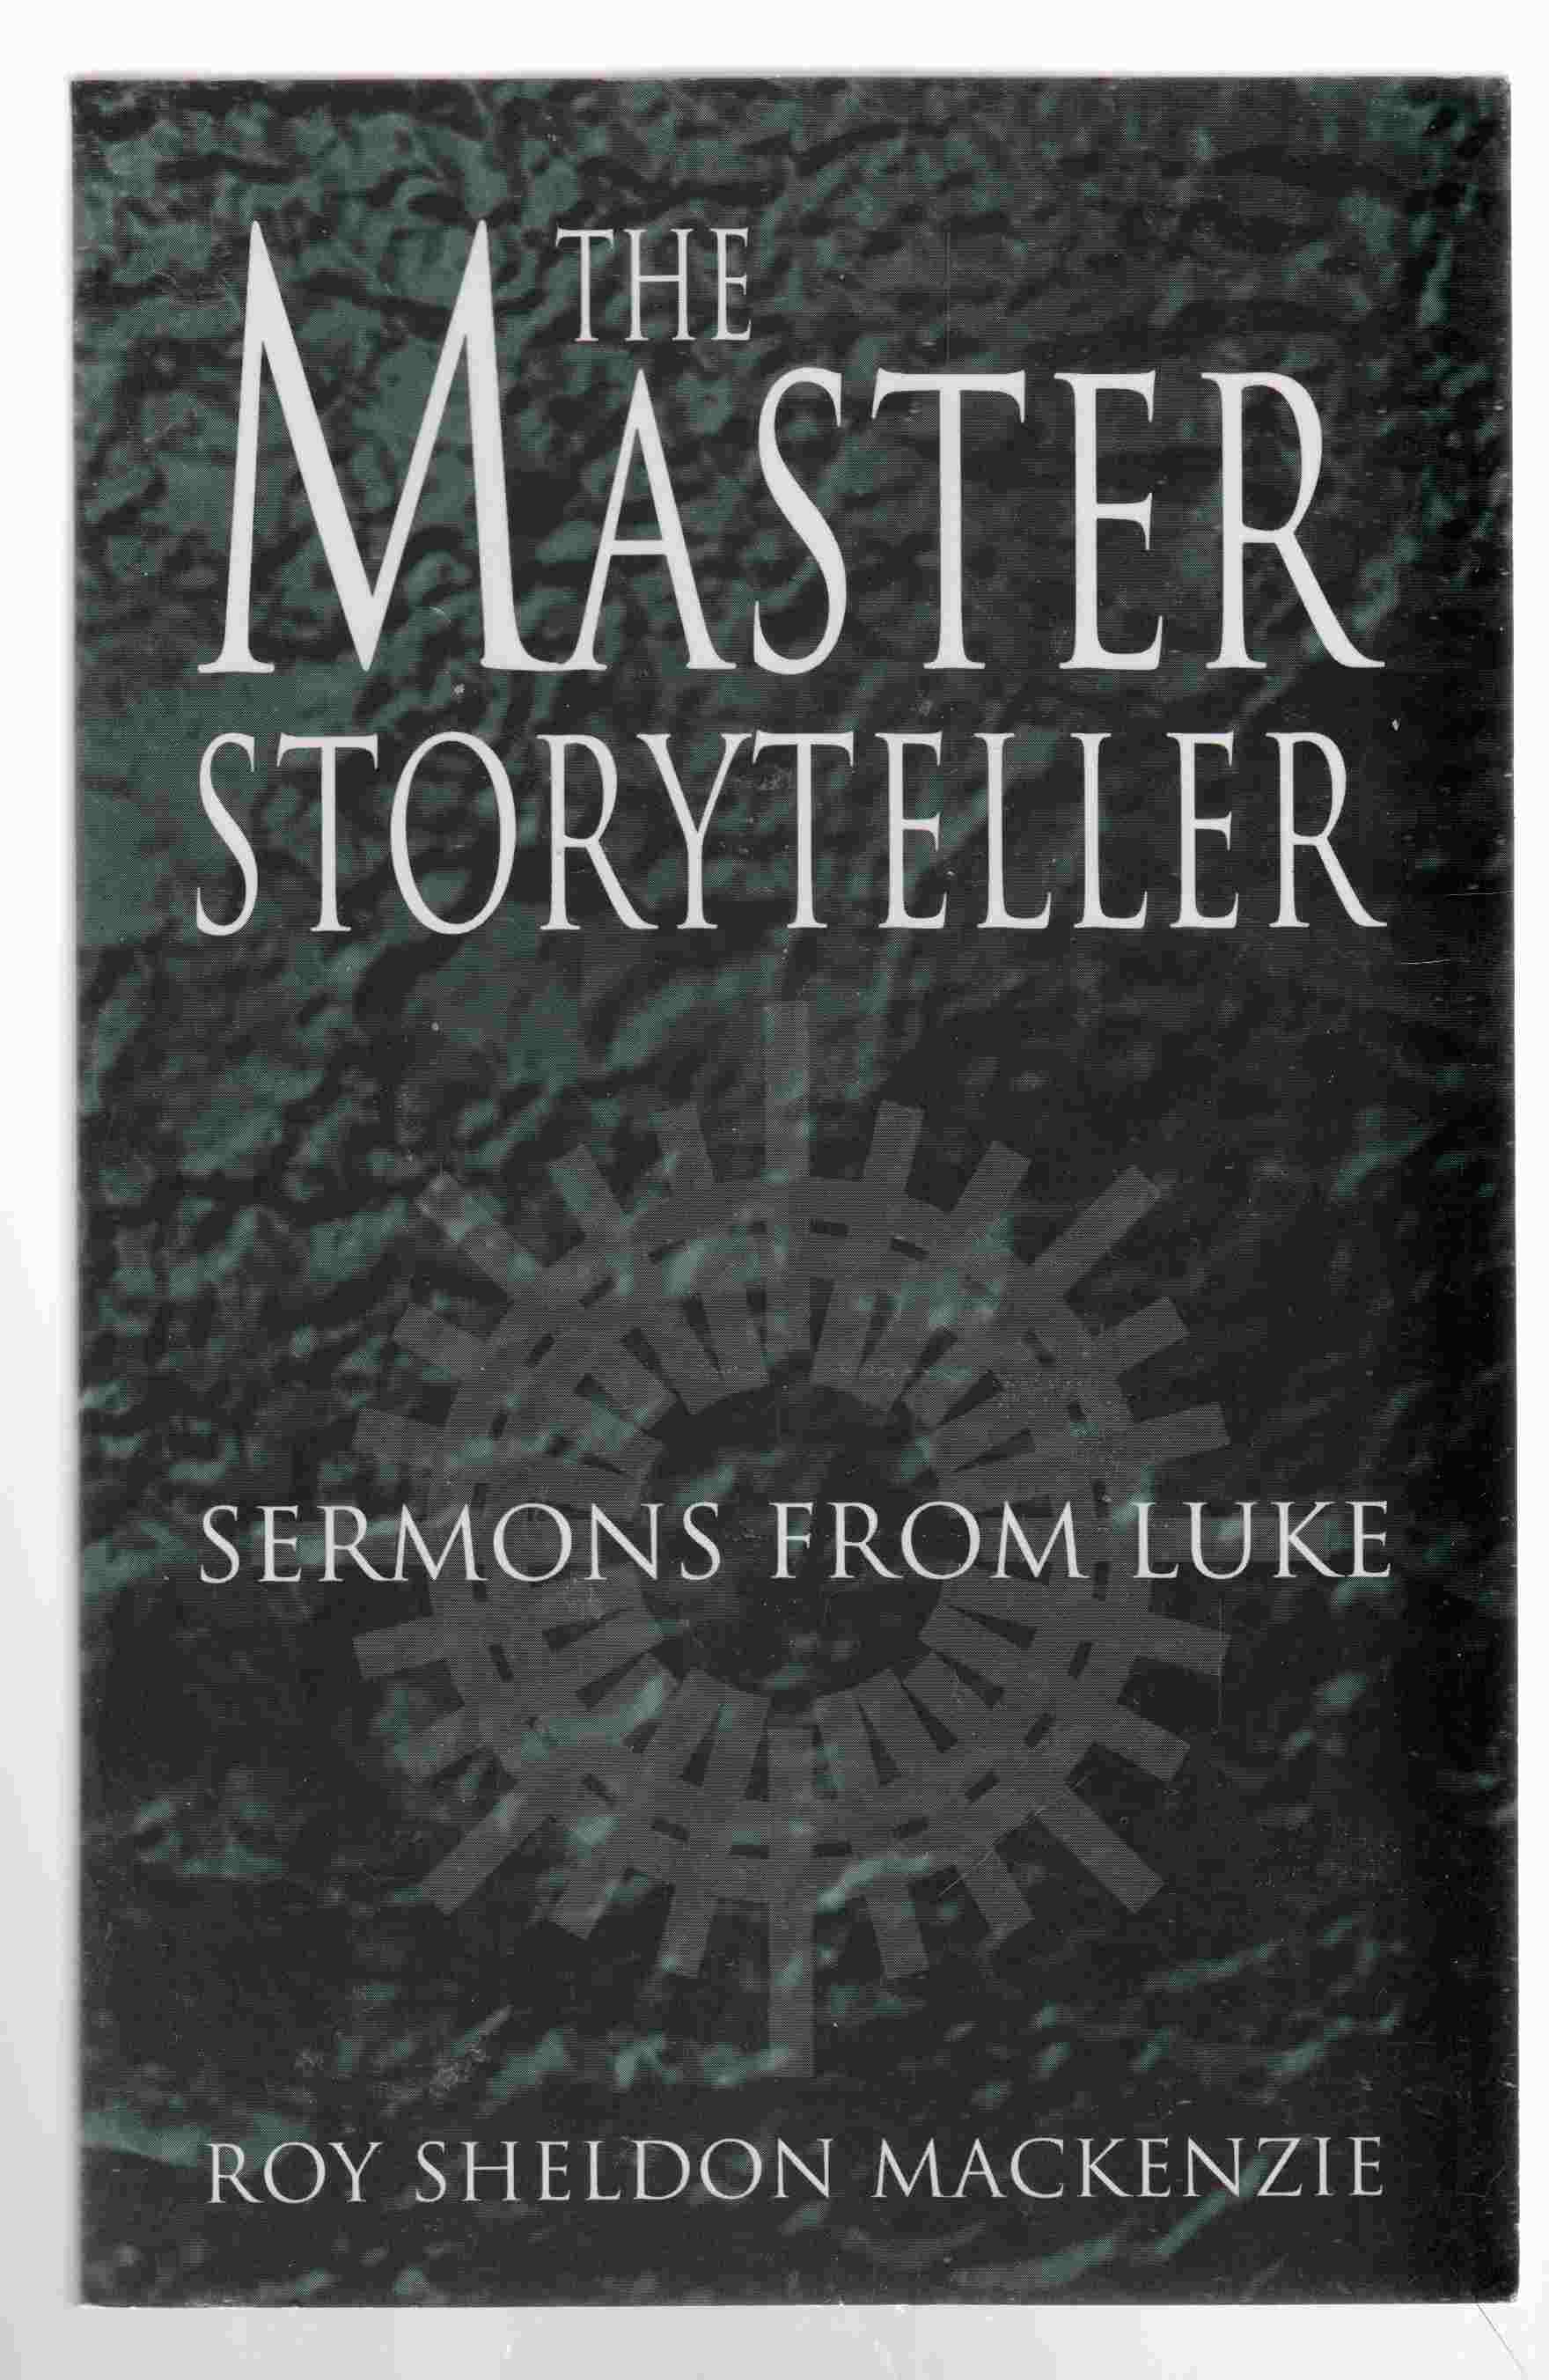 Image for The Master Storyteller Sermons from Luke